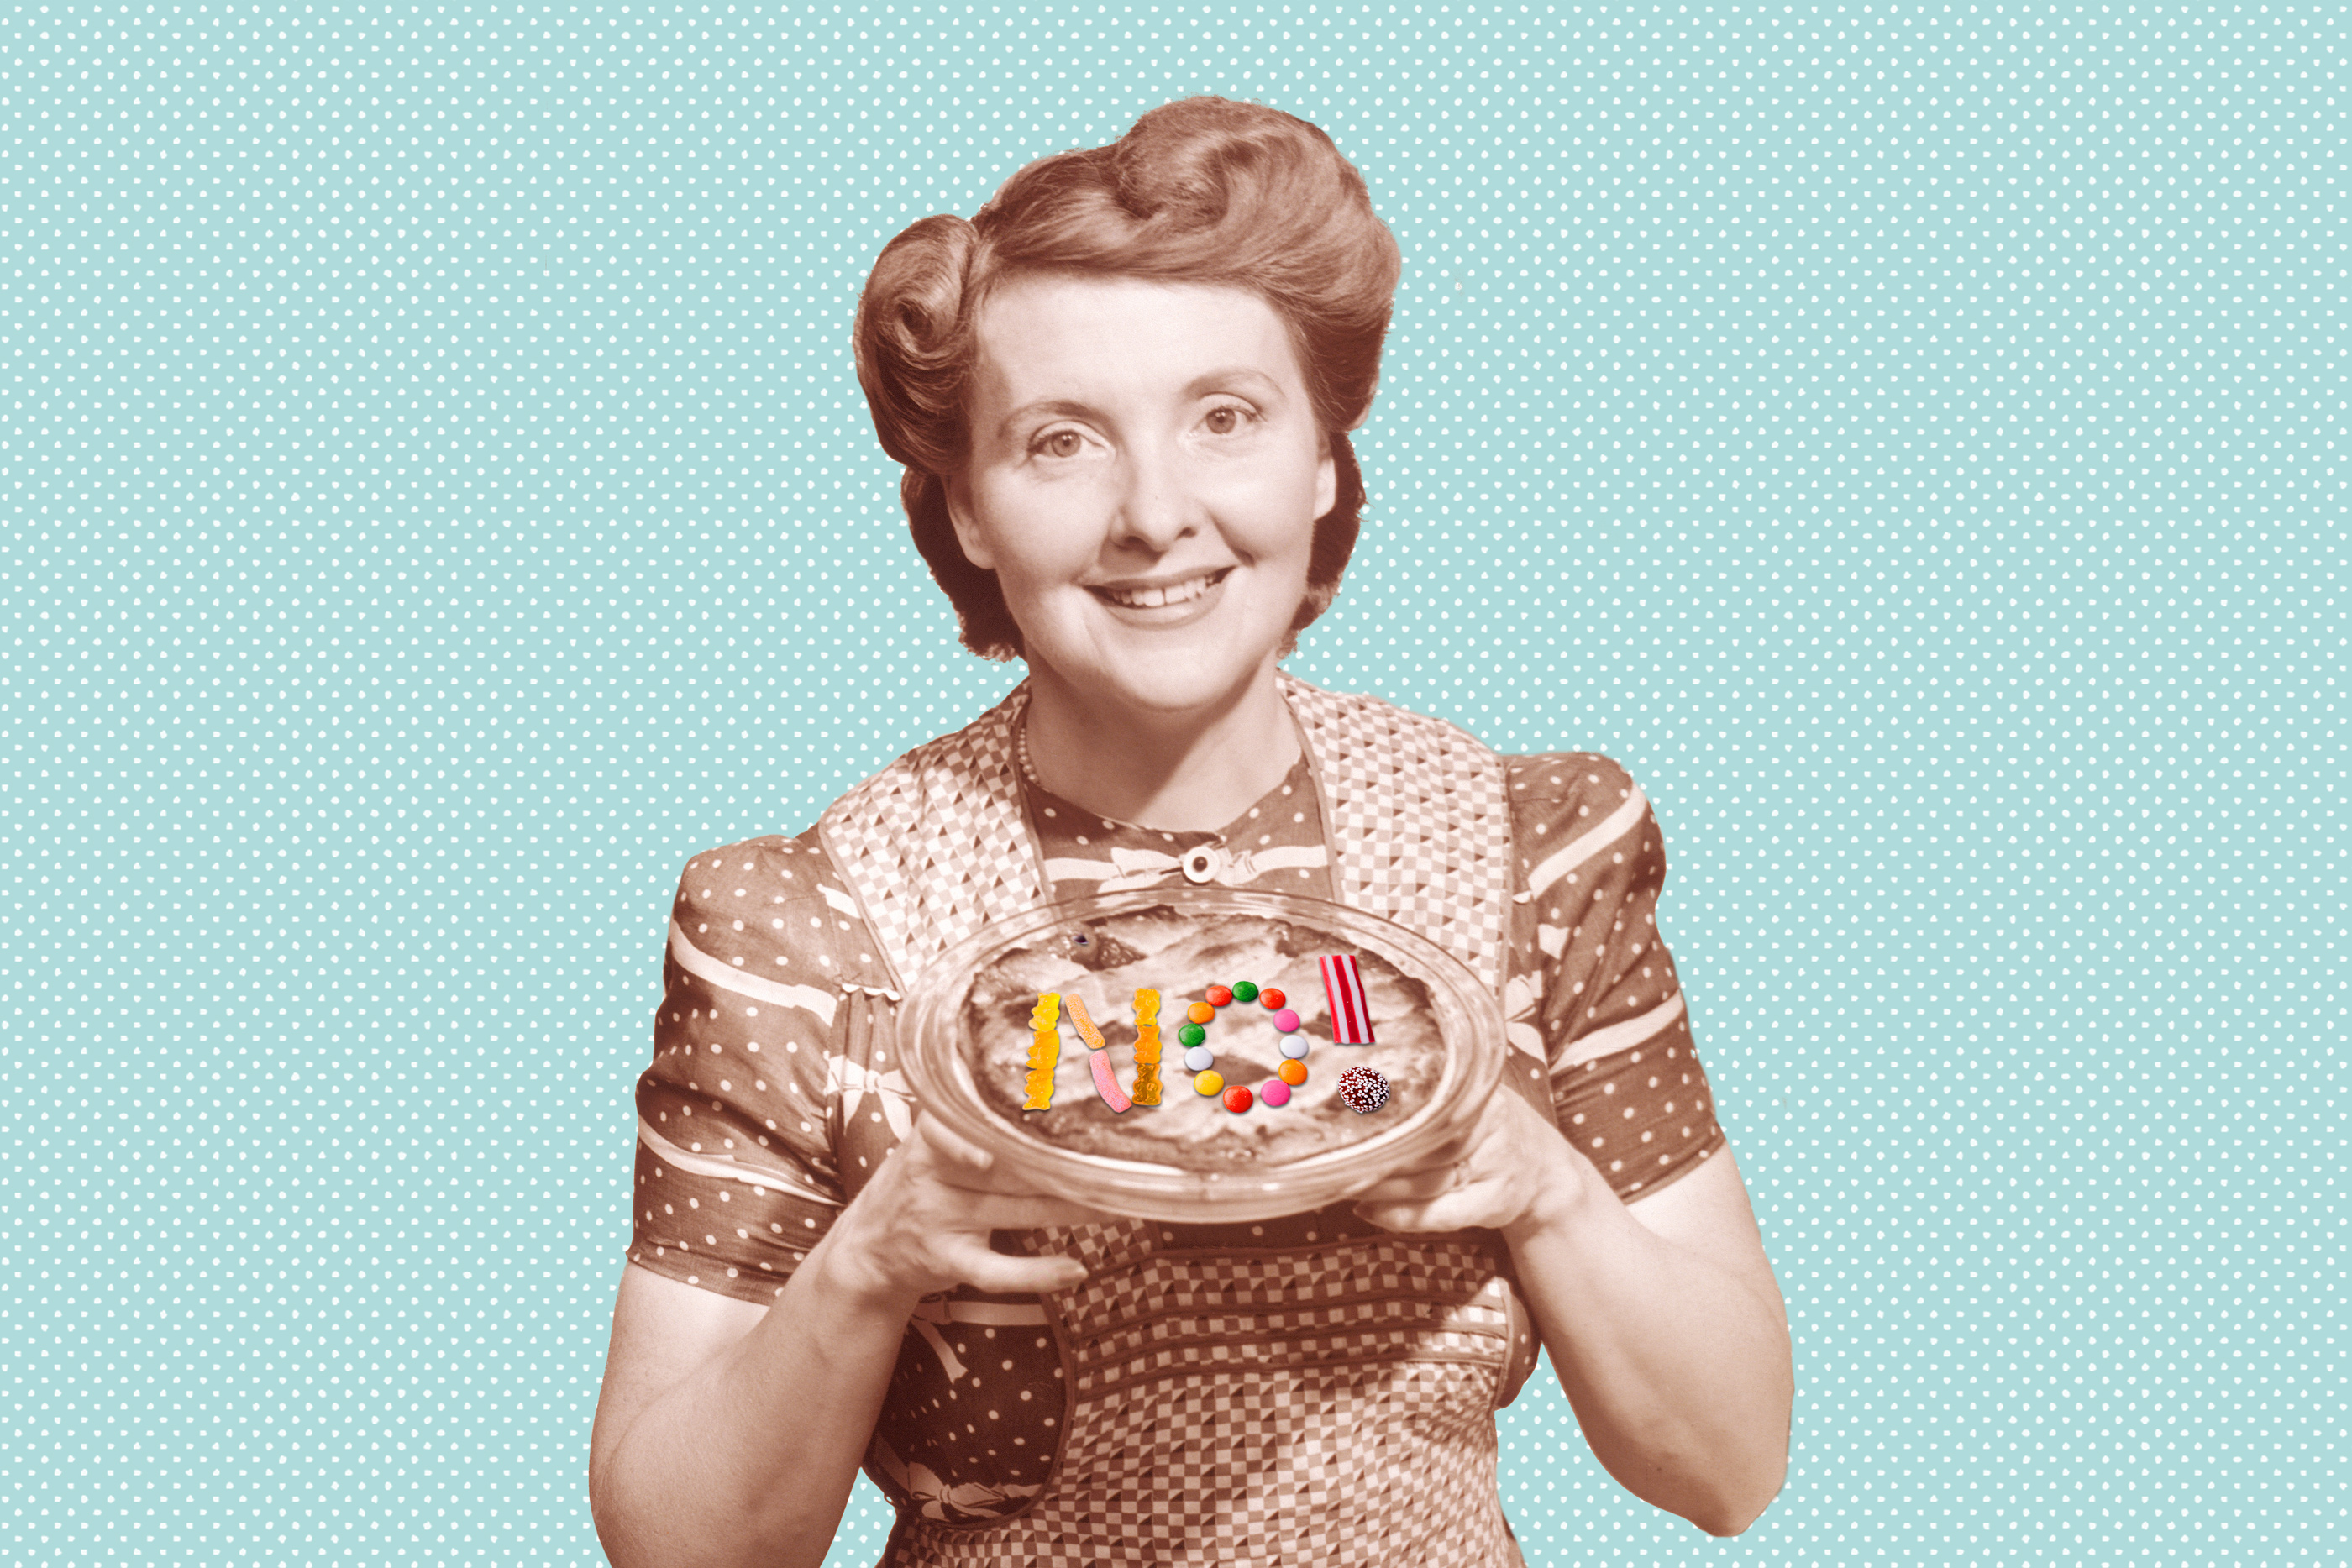 """1950s housewife holding pie with """"NO"""" on it"""